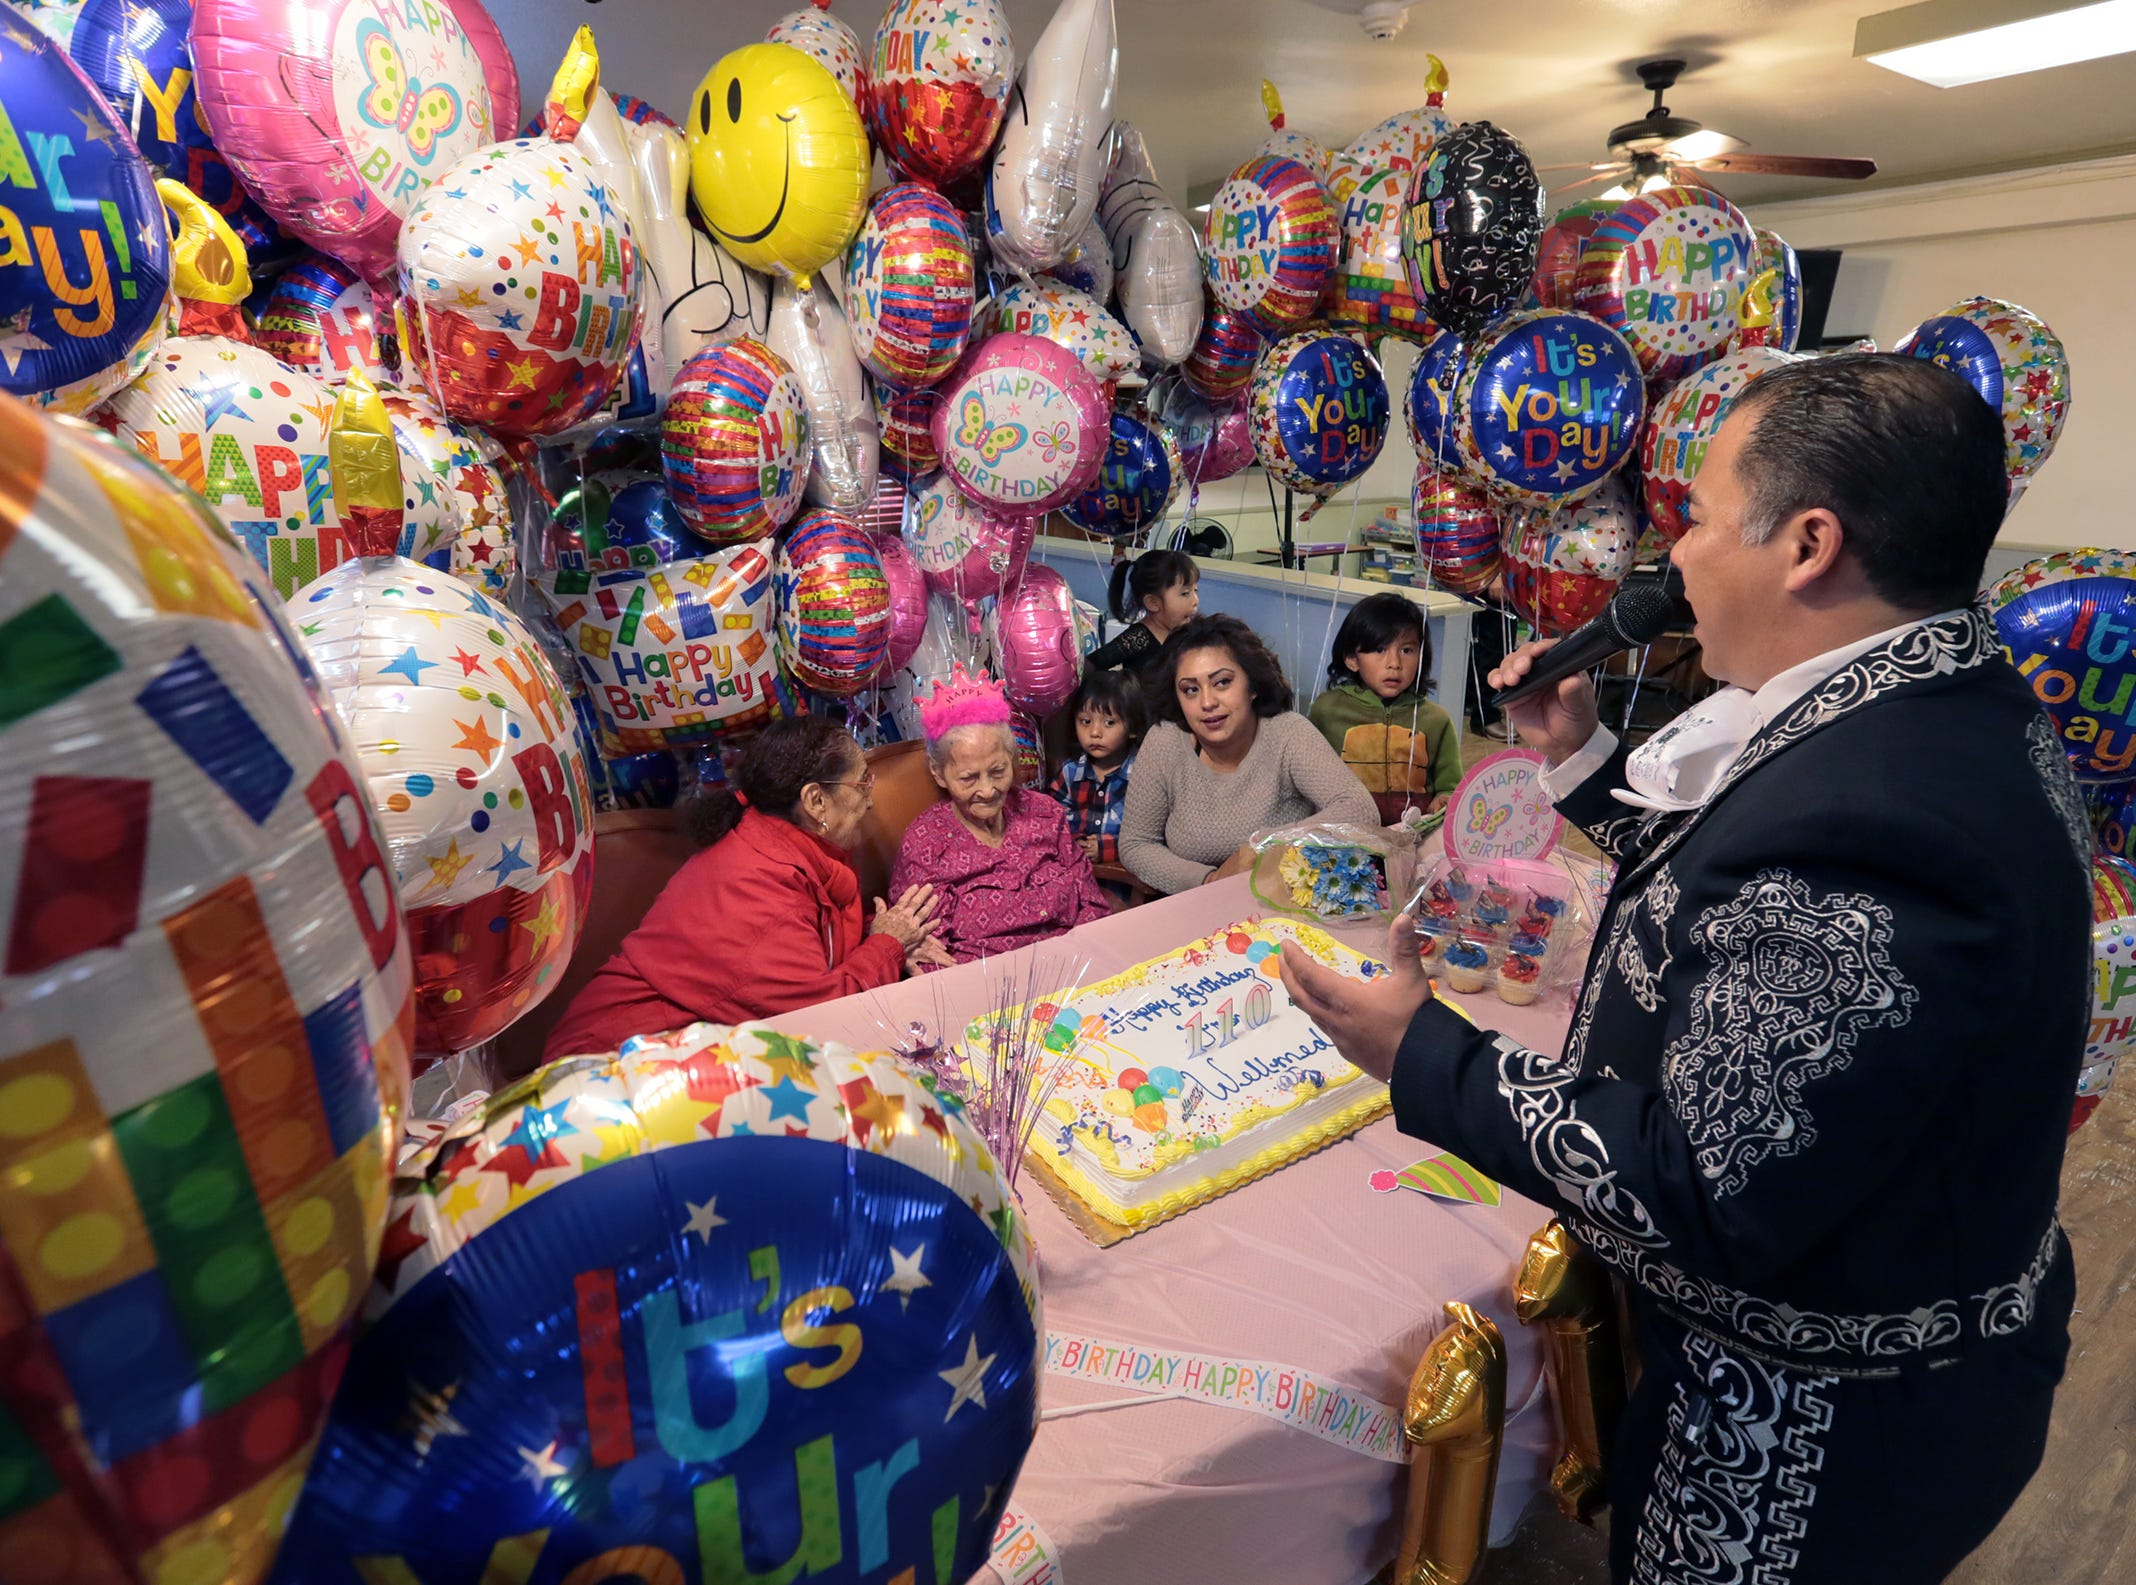 El Pasoan Maria de la Luz Angel Talamantes celebrates her 110th birthday Friday at Oasis Nursing and Rehabilitation Center. The Mexico native was a florist in Mexico before moving to El Paso.  Maria was joined by family and the residents at Oasis complete with mariachis.